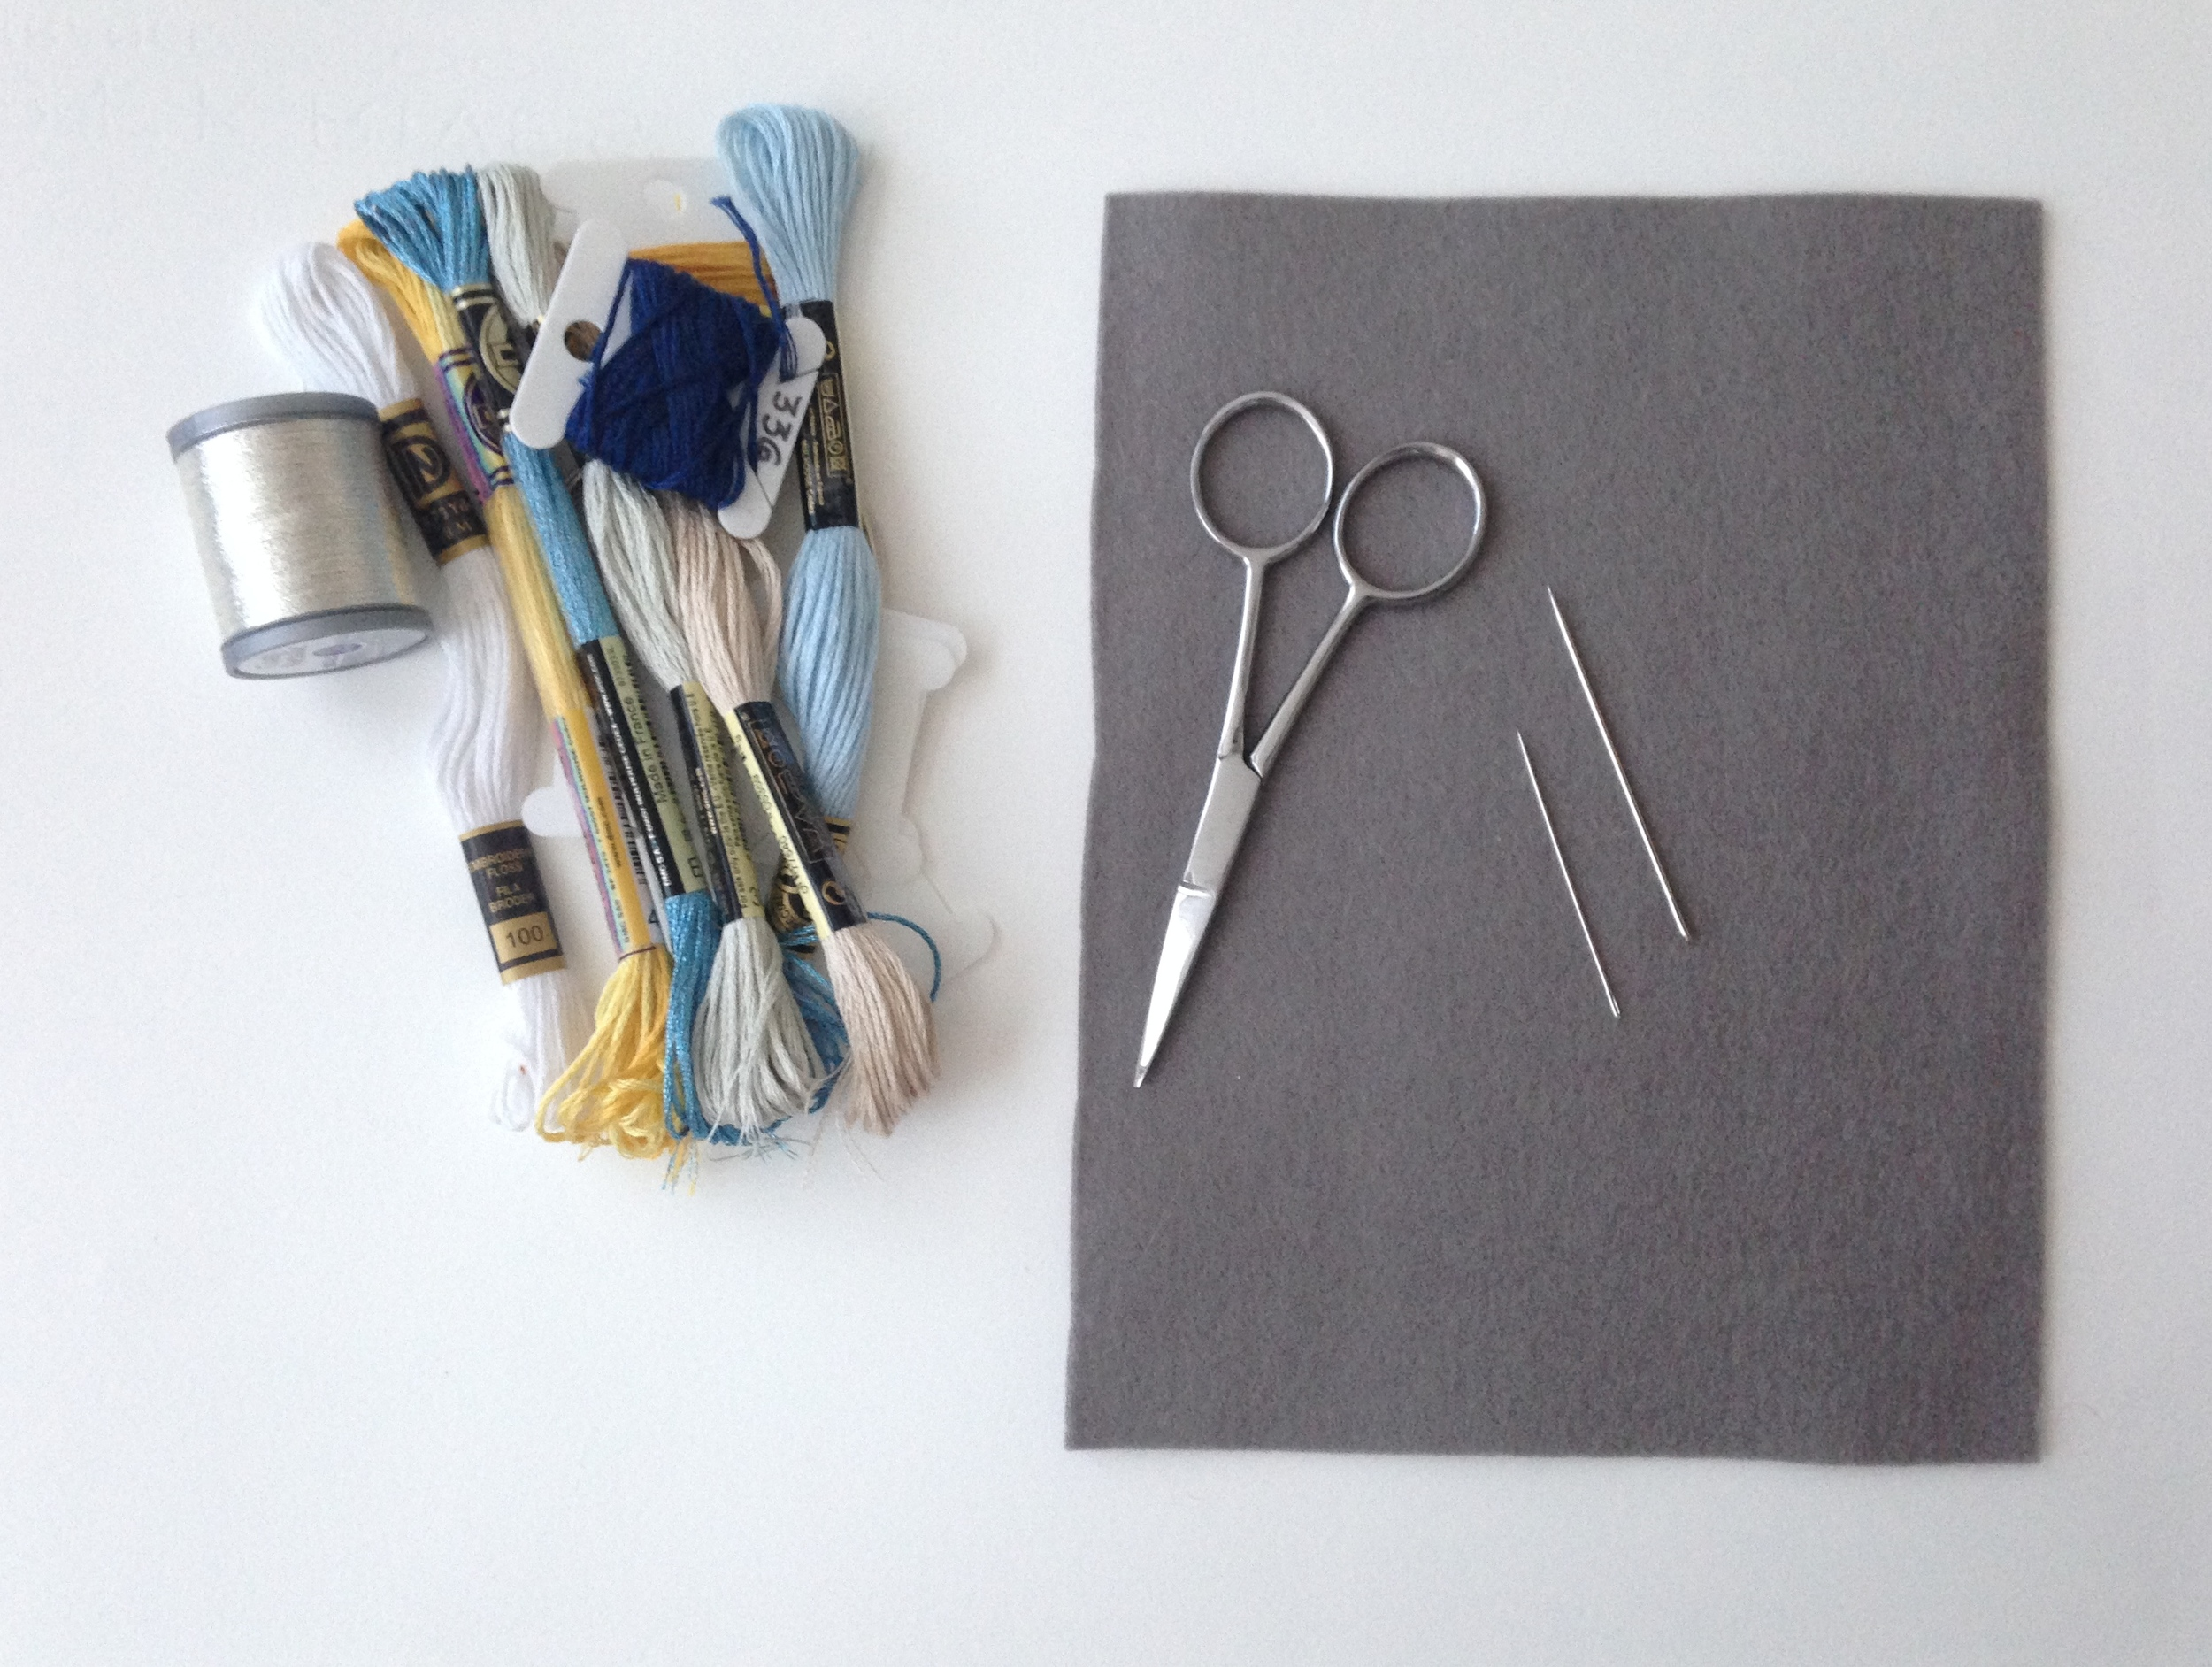 Begin collecting your materials size and thread for your stitching. I didn't actually use all these materials, but wanted them on hand just in case.